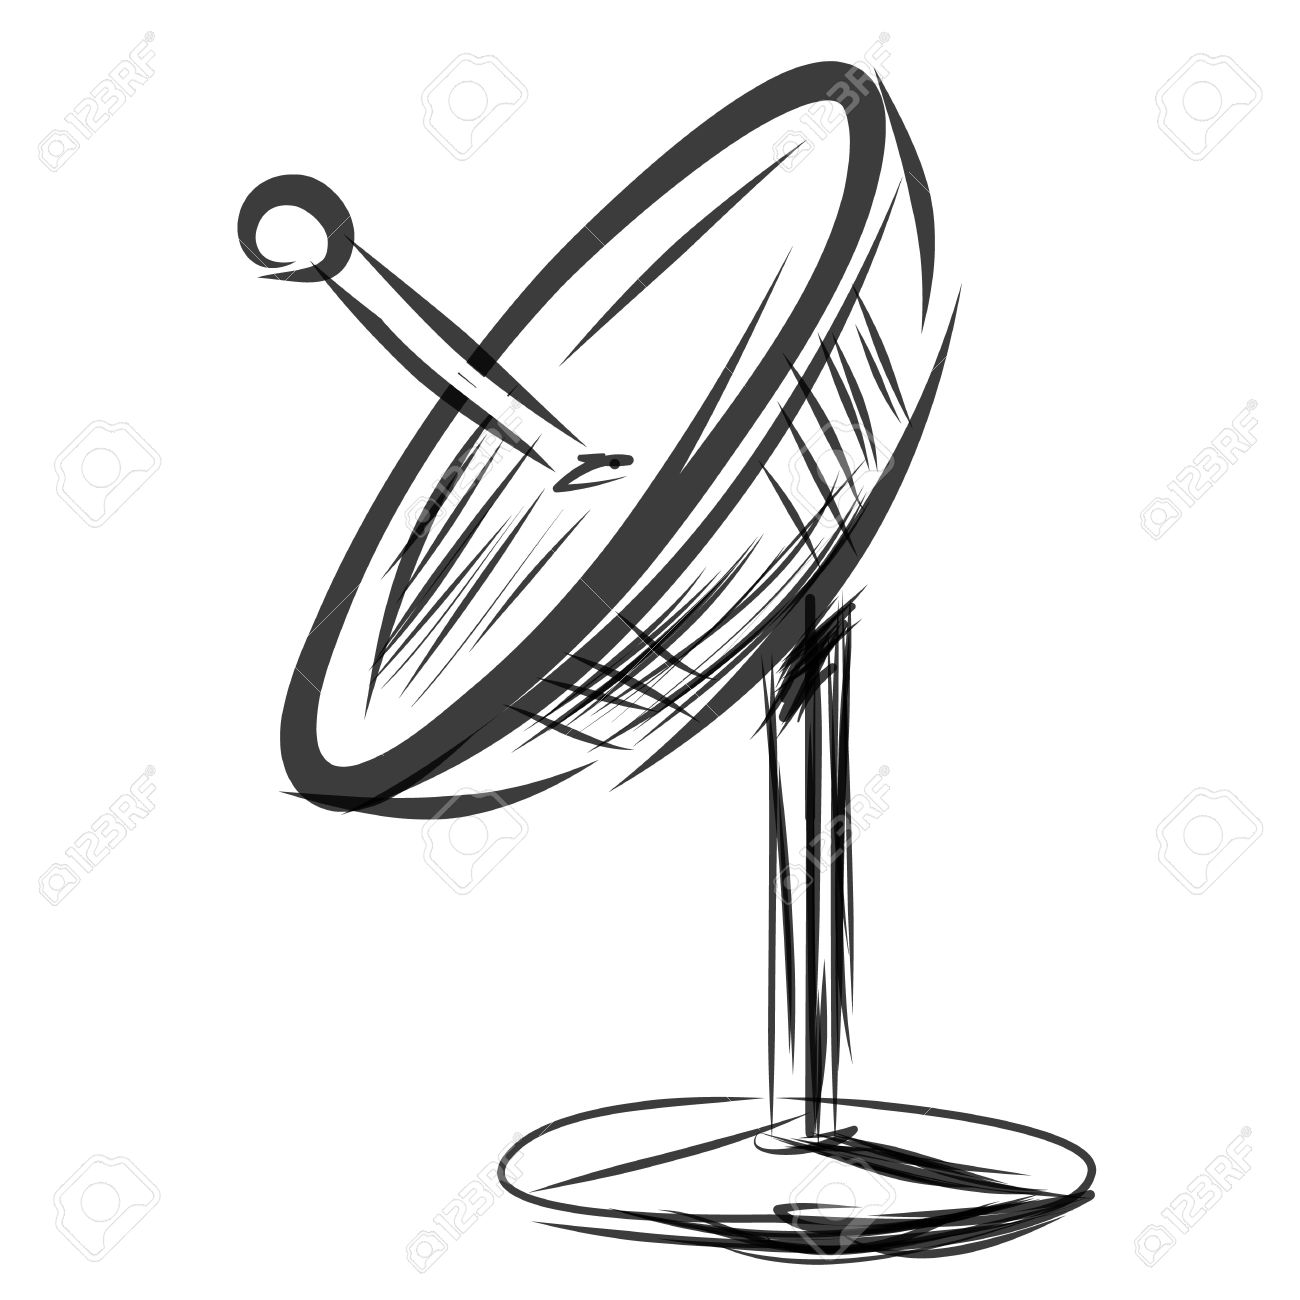 1300x1300 Satellite Dish. Sketch Vector Illustration Royalty Free Cliparts